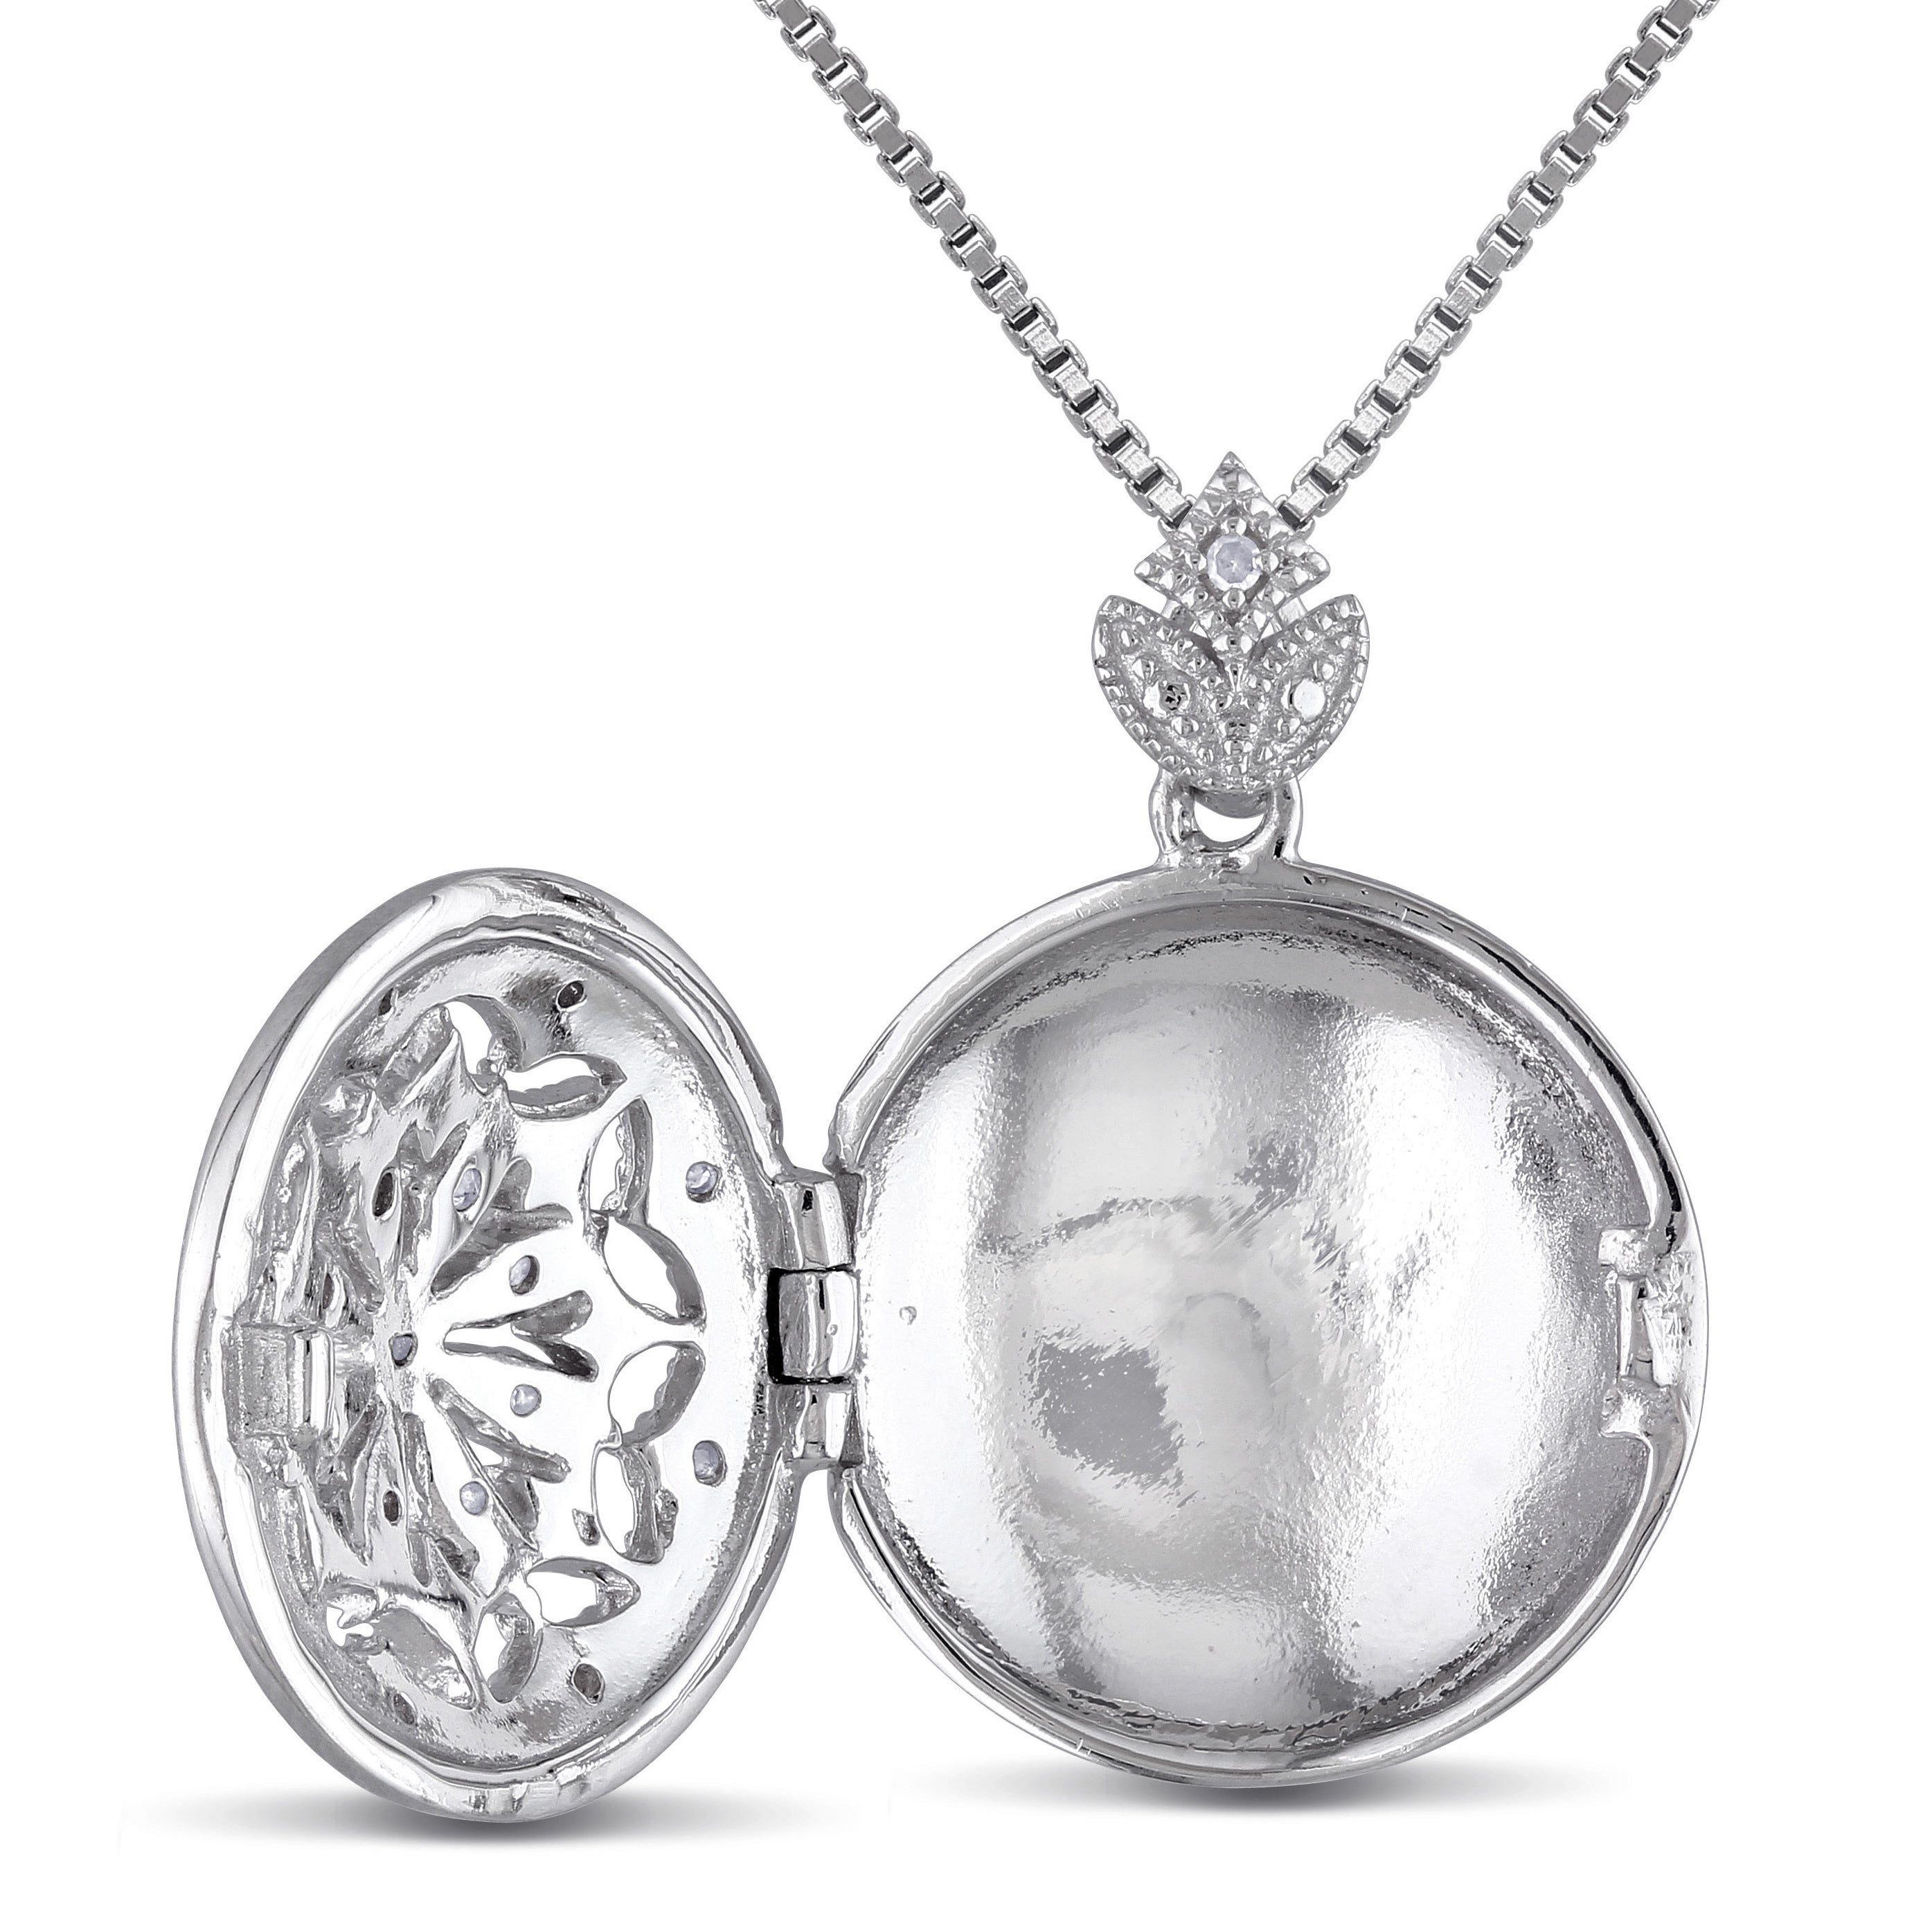 locket grams silver weight rhodium with cross dove width length sterling lockets plated heart p